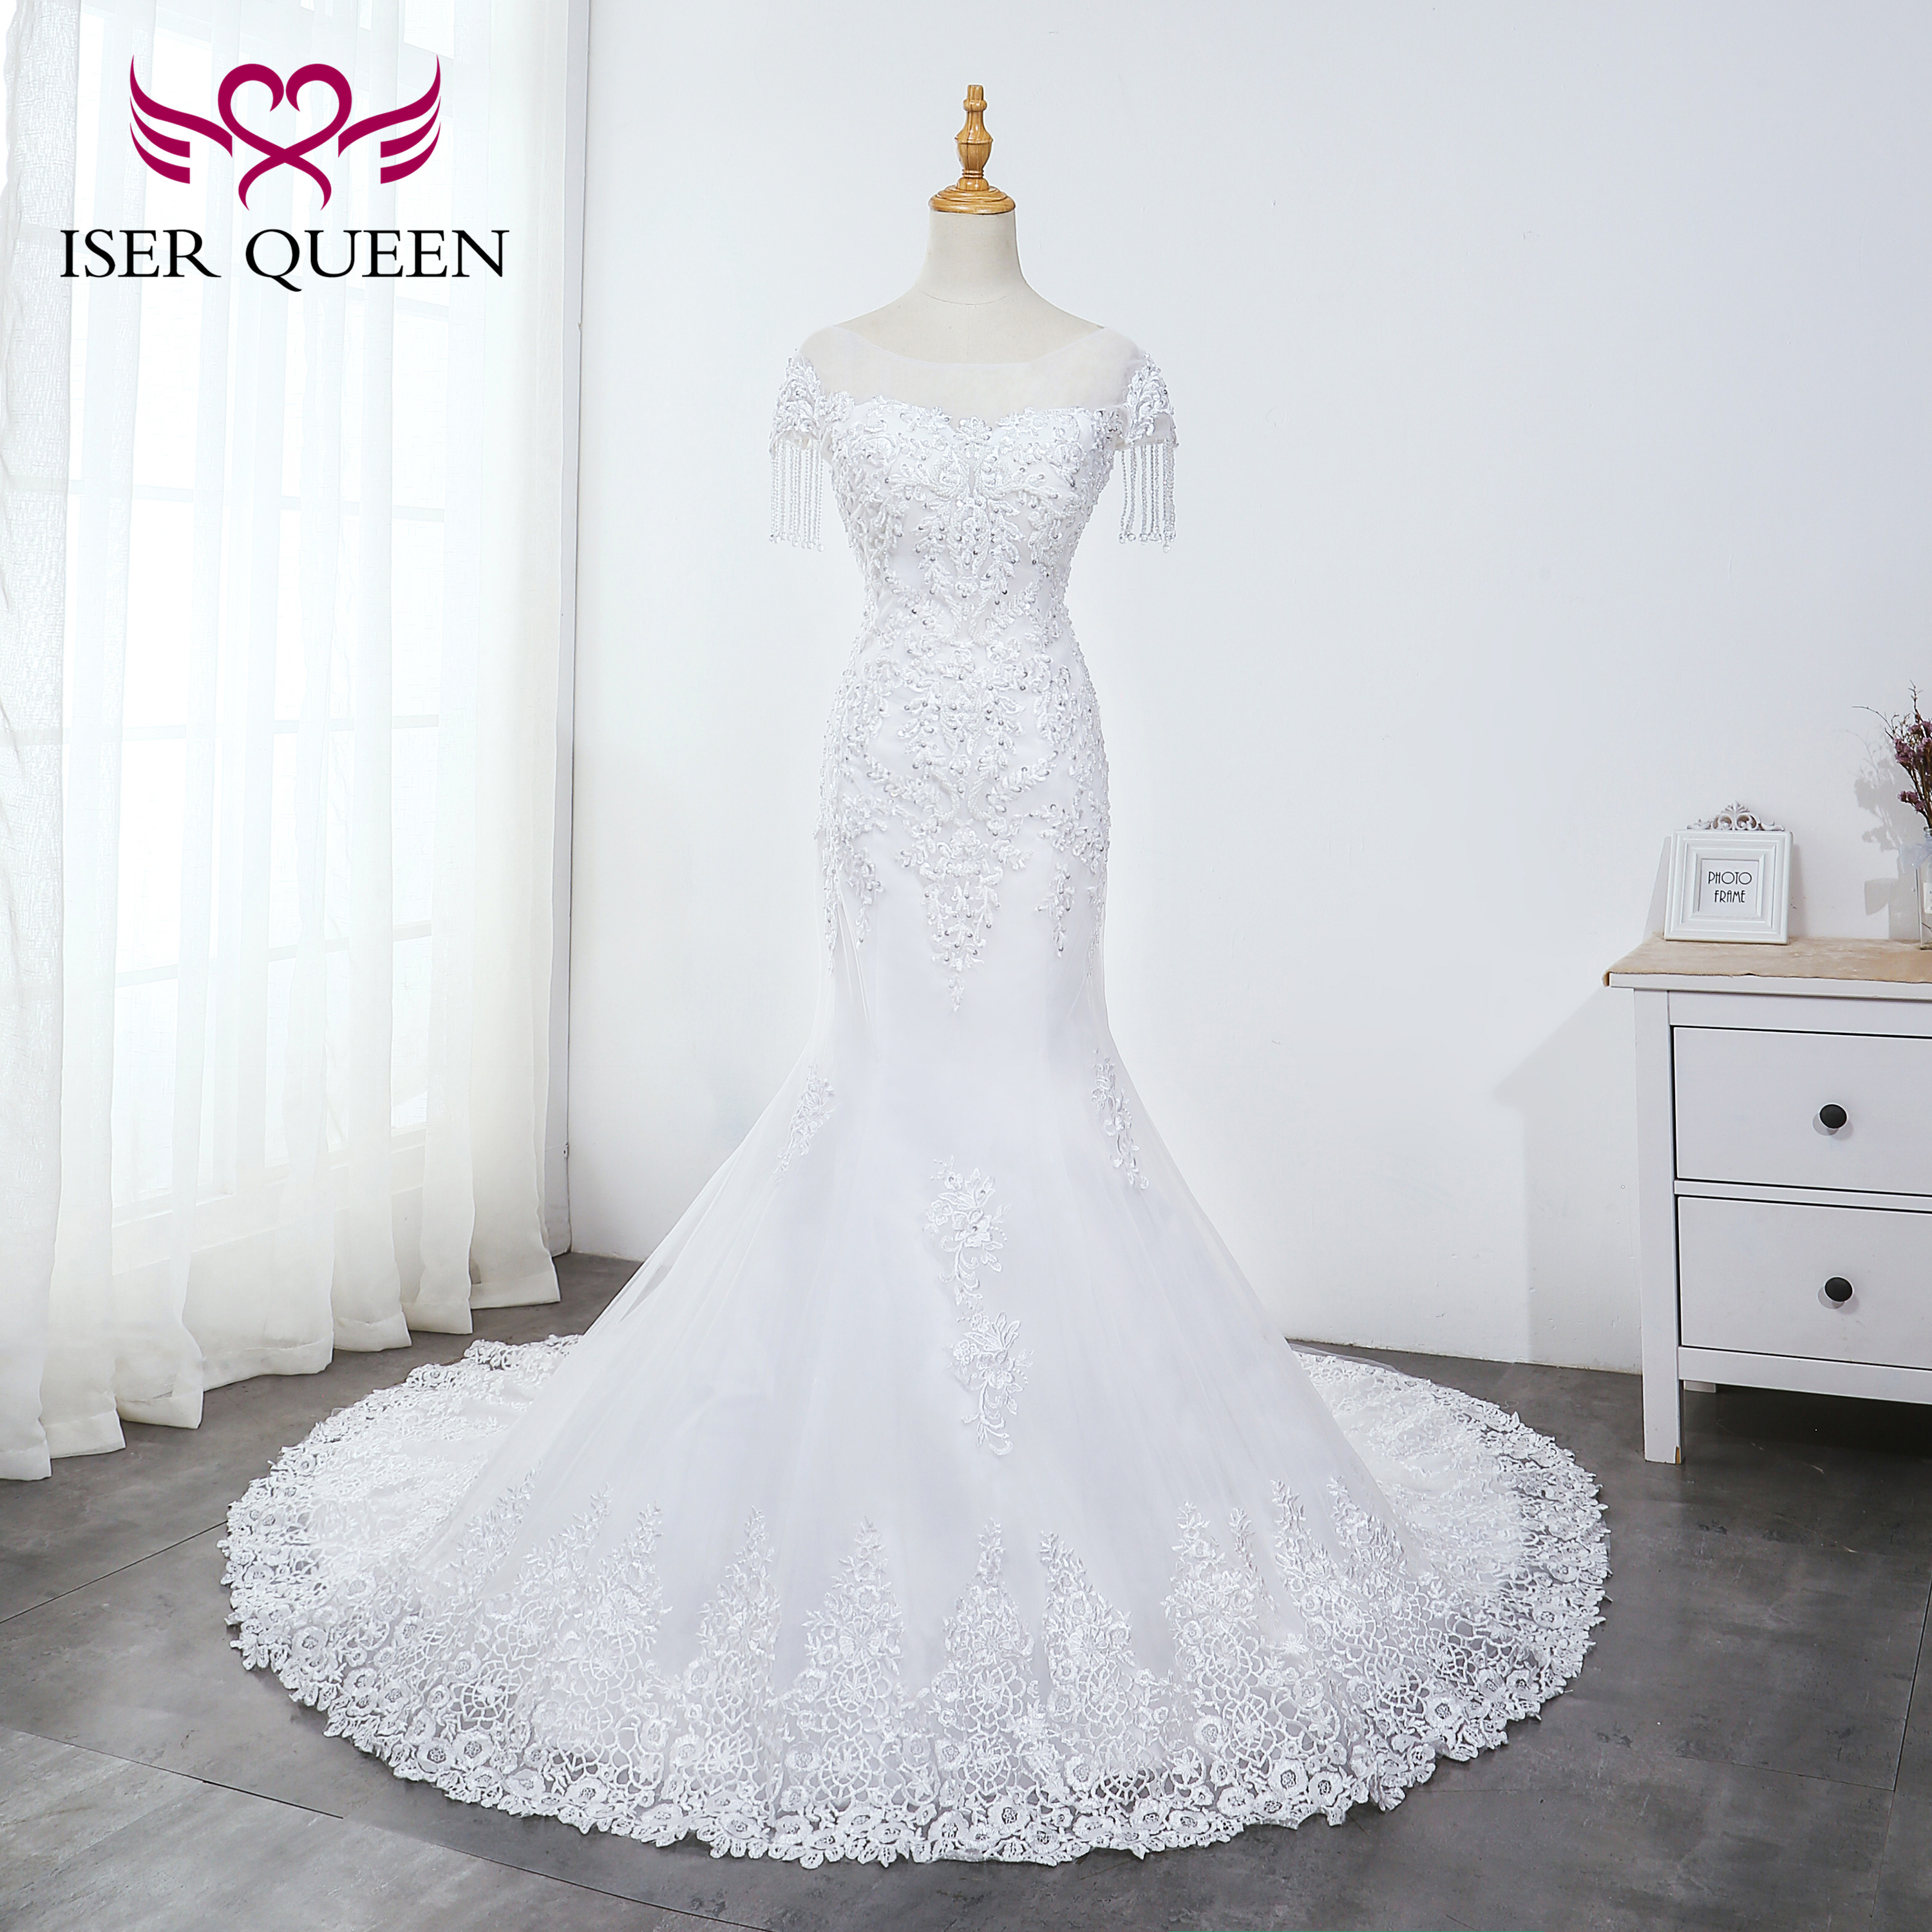 O-neck Heavy Beading Mermaid Wedding Dress Pure White Tassel Bridal Gown Embroidery Tulle Lace Up Wedding Dresses WX0042